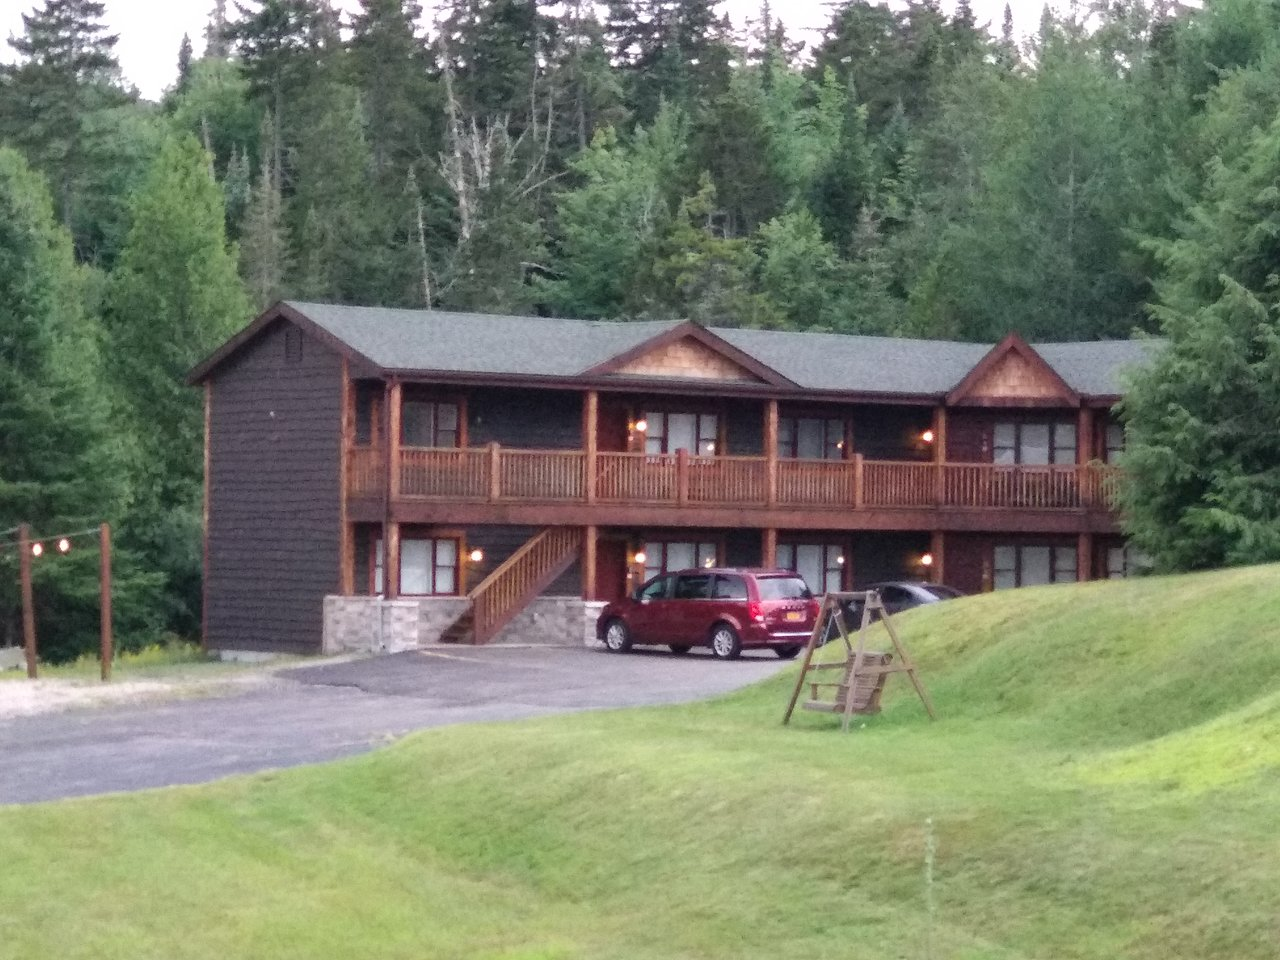 Hydrotherapy in the Woods: Relaxing and Therapeutic Vacation in Lake Placid Cabins